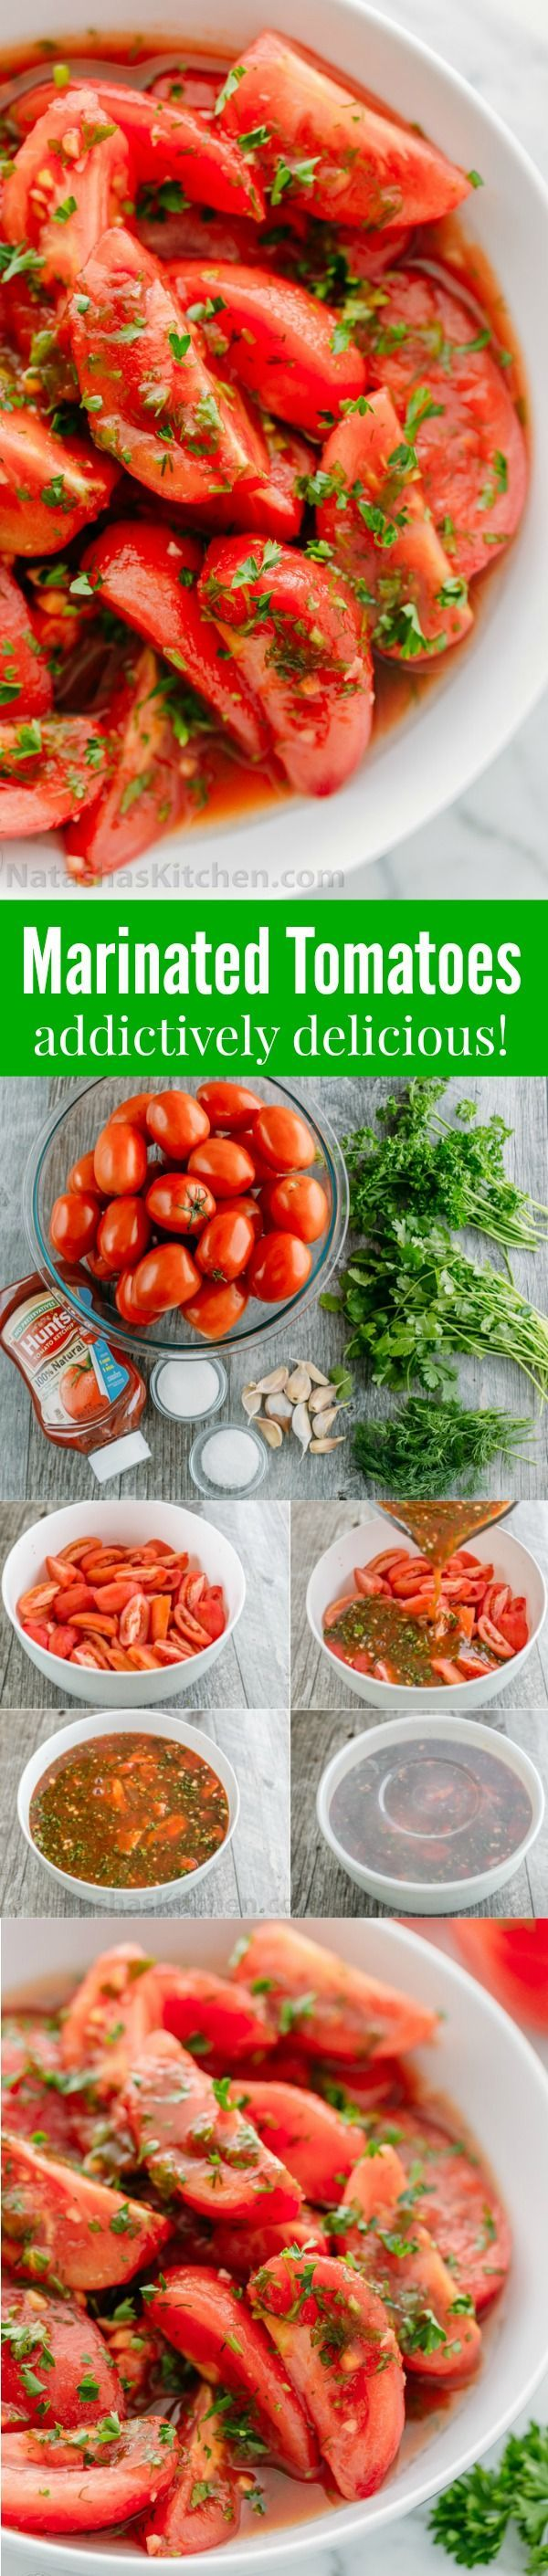 Marinated Tomatoes - Addictively delicious! Served these marinated tomatoes at a potluck and everyone wanted the recipe! Marinated tomatoes are a great make-ahead side dish.